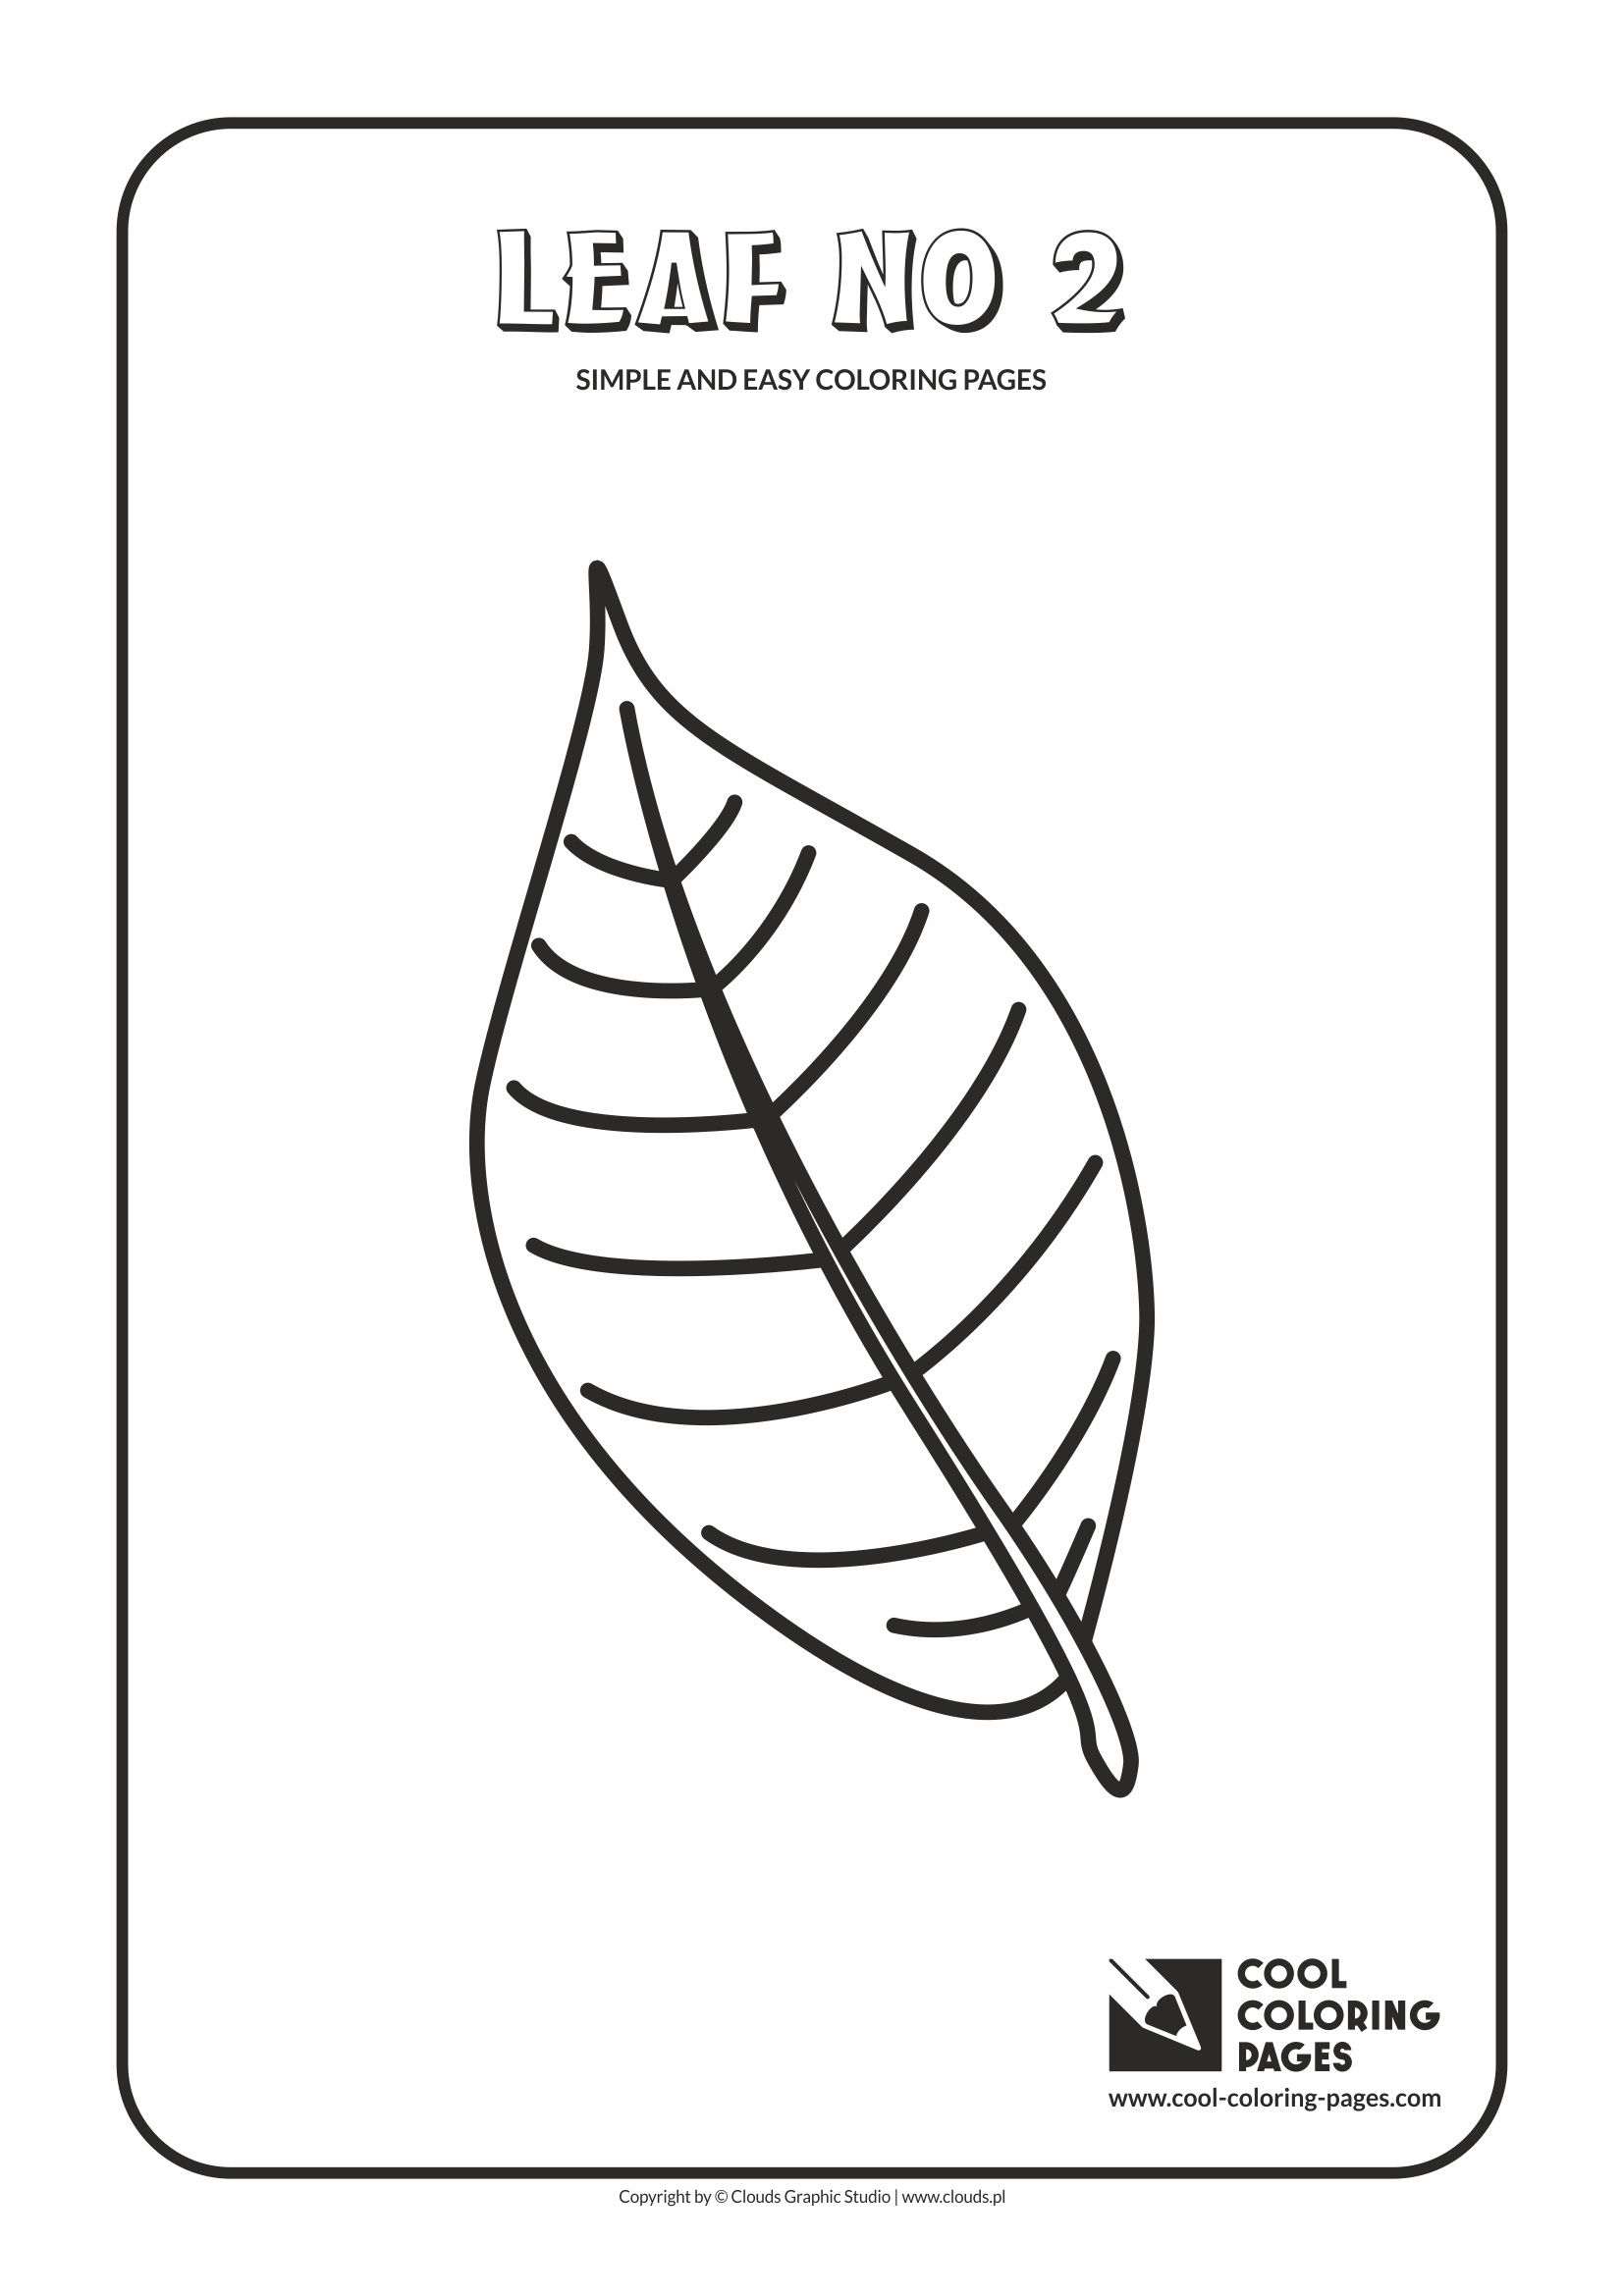 Simple and easy coloring pages for toddlers - Leaf no 2